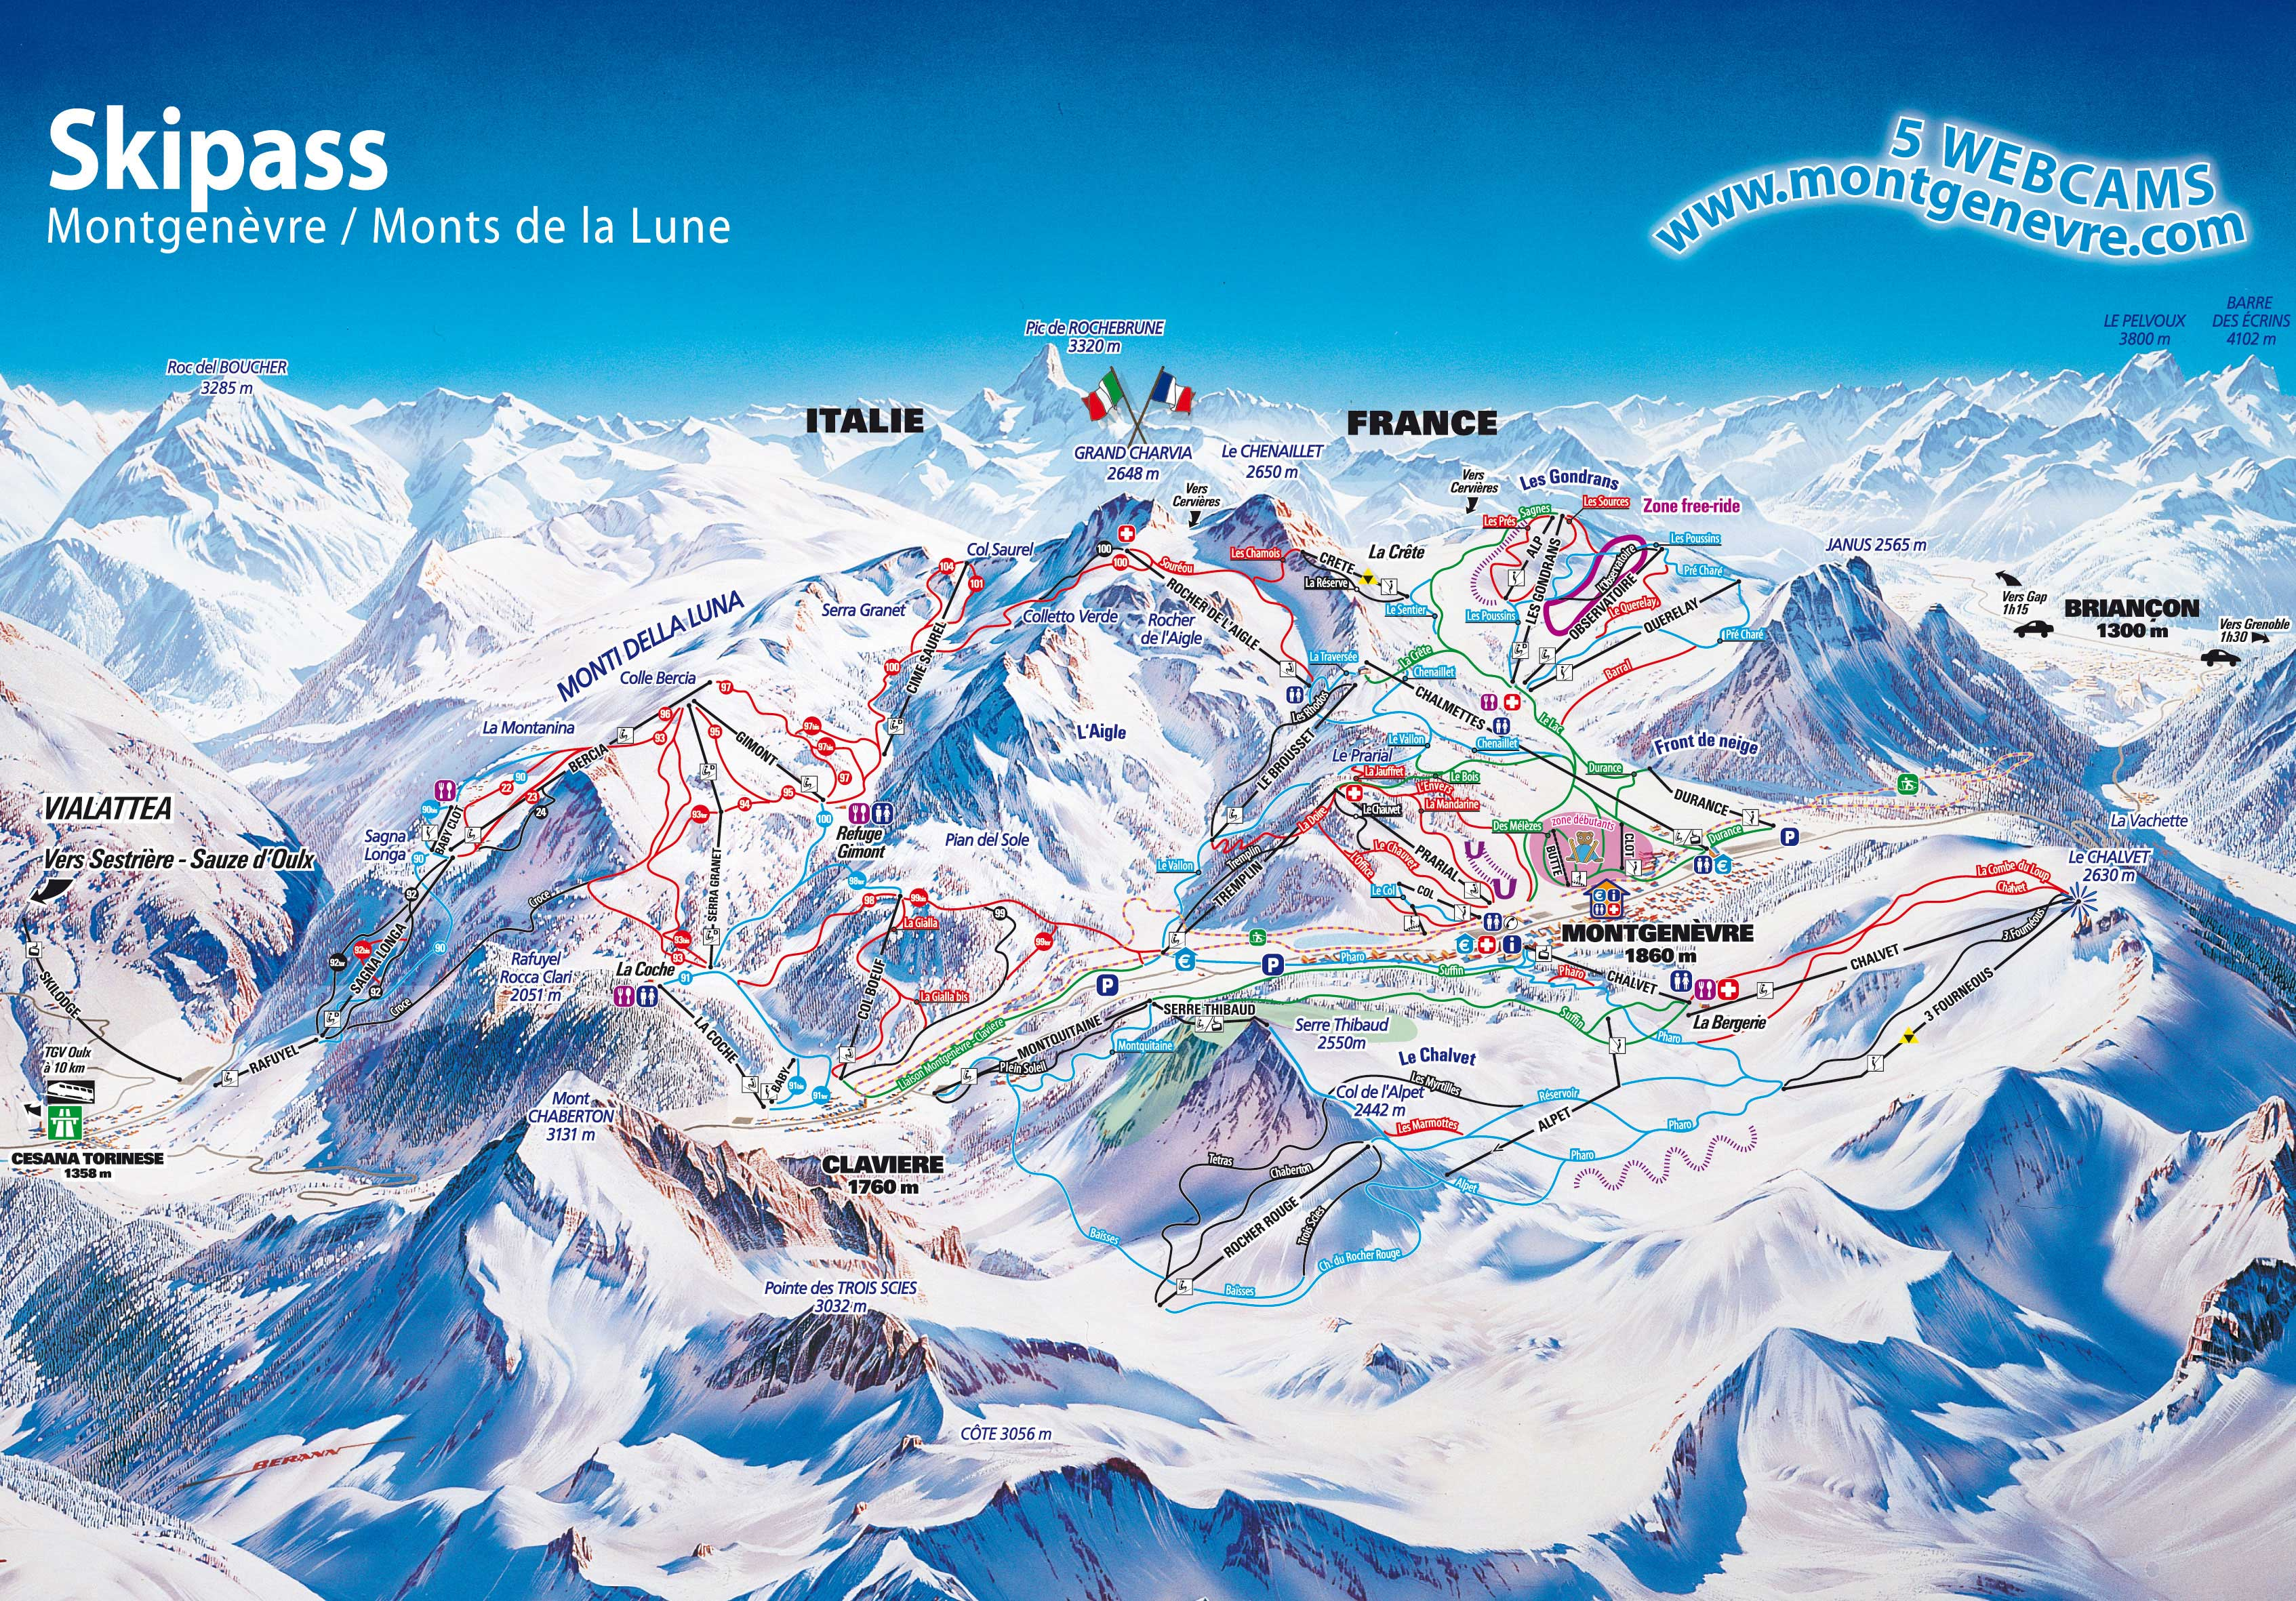 MONTGENEVRE MAP 23 open pistes 9 open ski lifts WinterSportscom